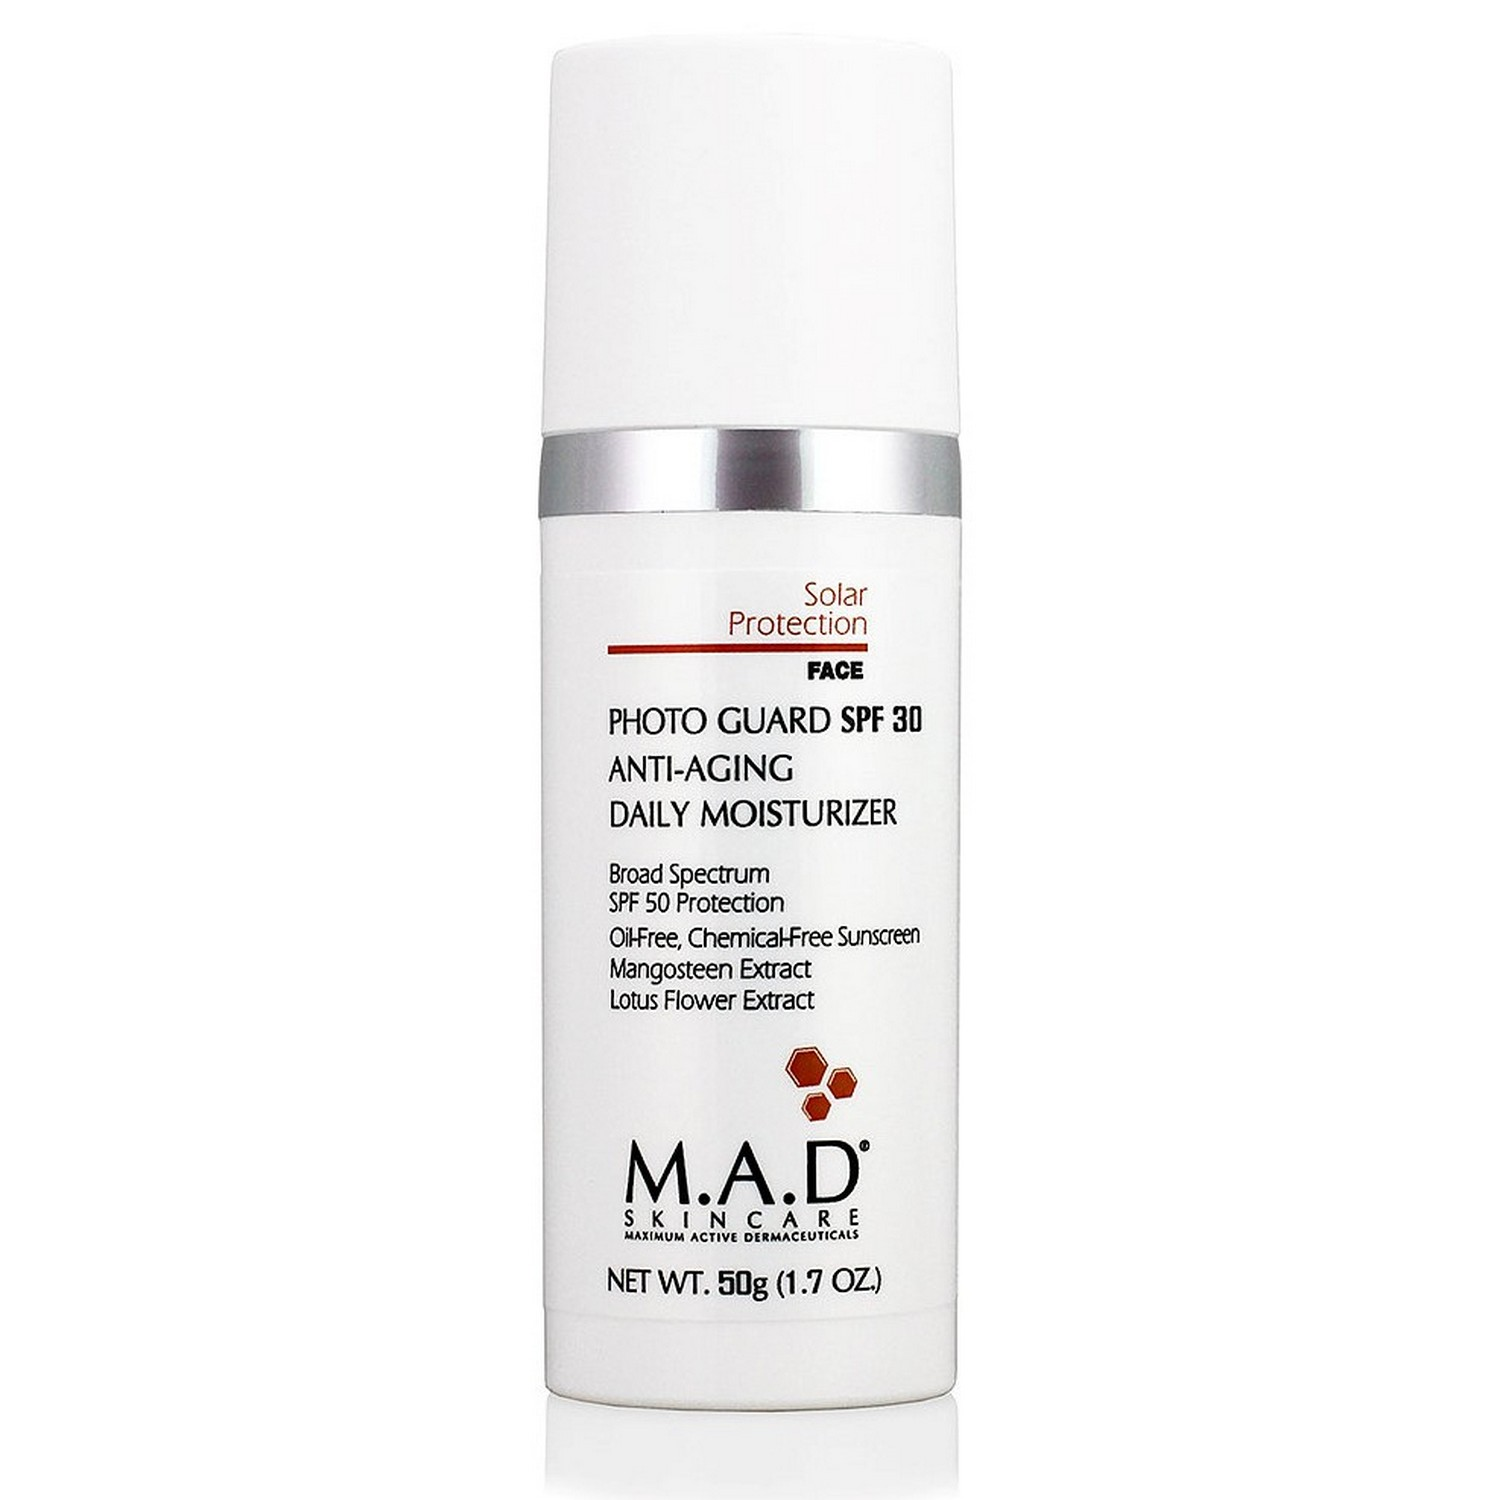 M.A.D SKINCARE PHOTO GUARD SPF 30 ANTI-AGING DAILY MOISTURIZER (50 g / 1.7 oz)